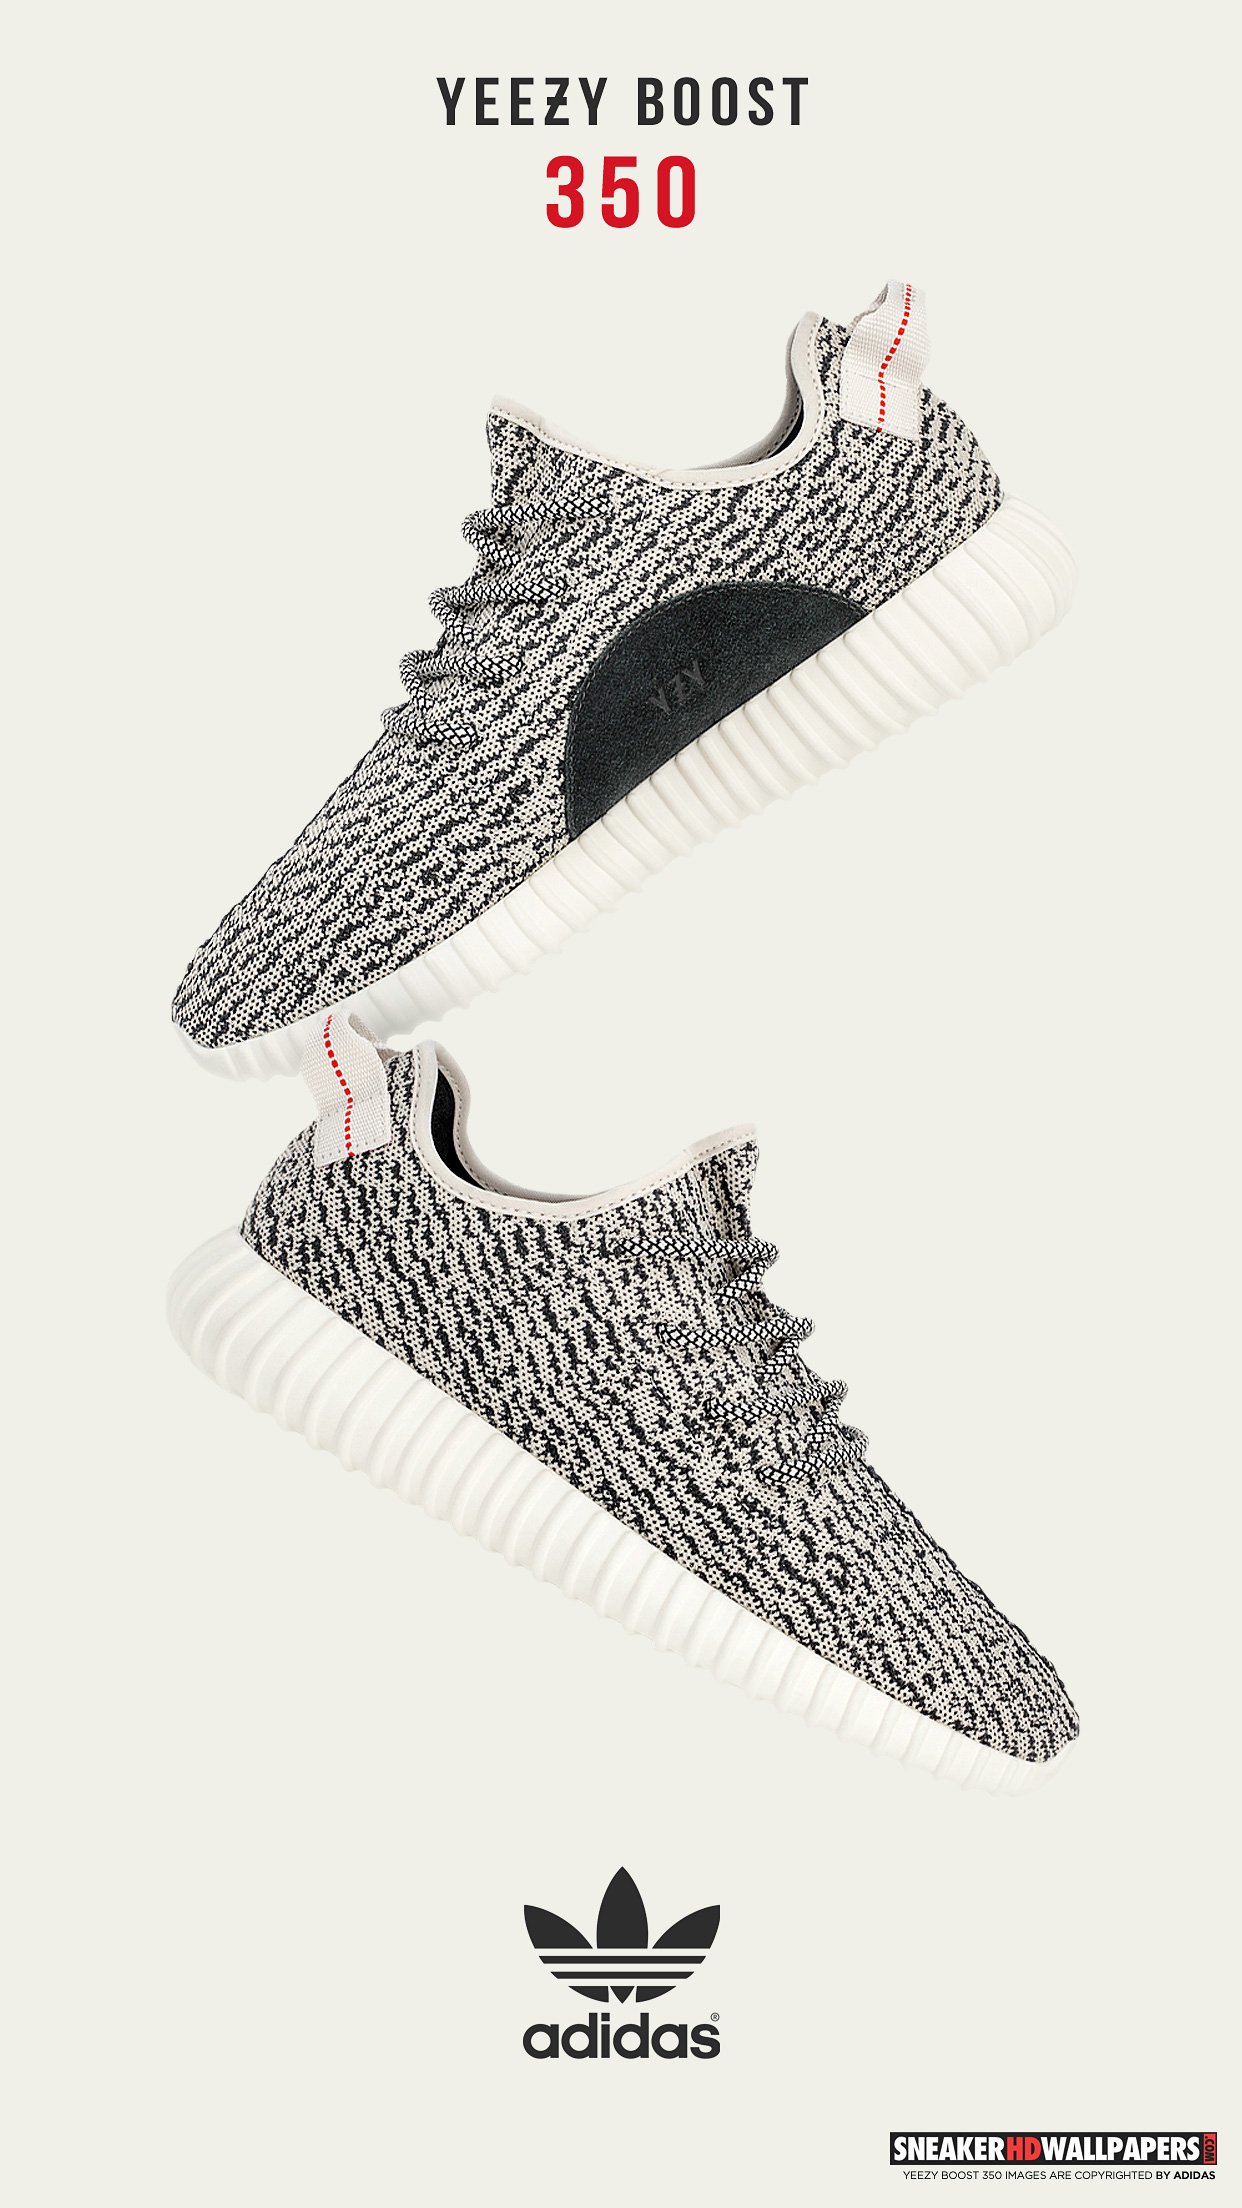 and so much more Blog Archive Adidas Yeezy Boost 350 wallpaper 1242x2208